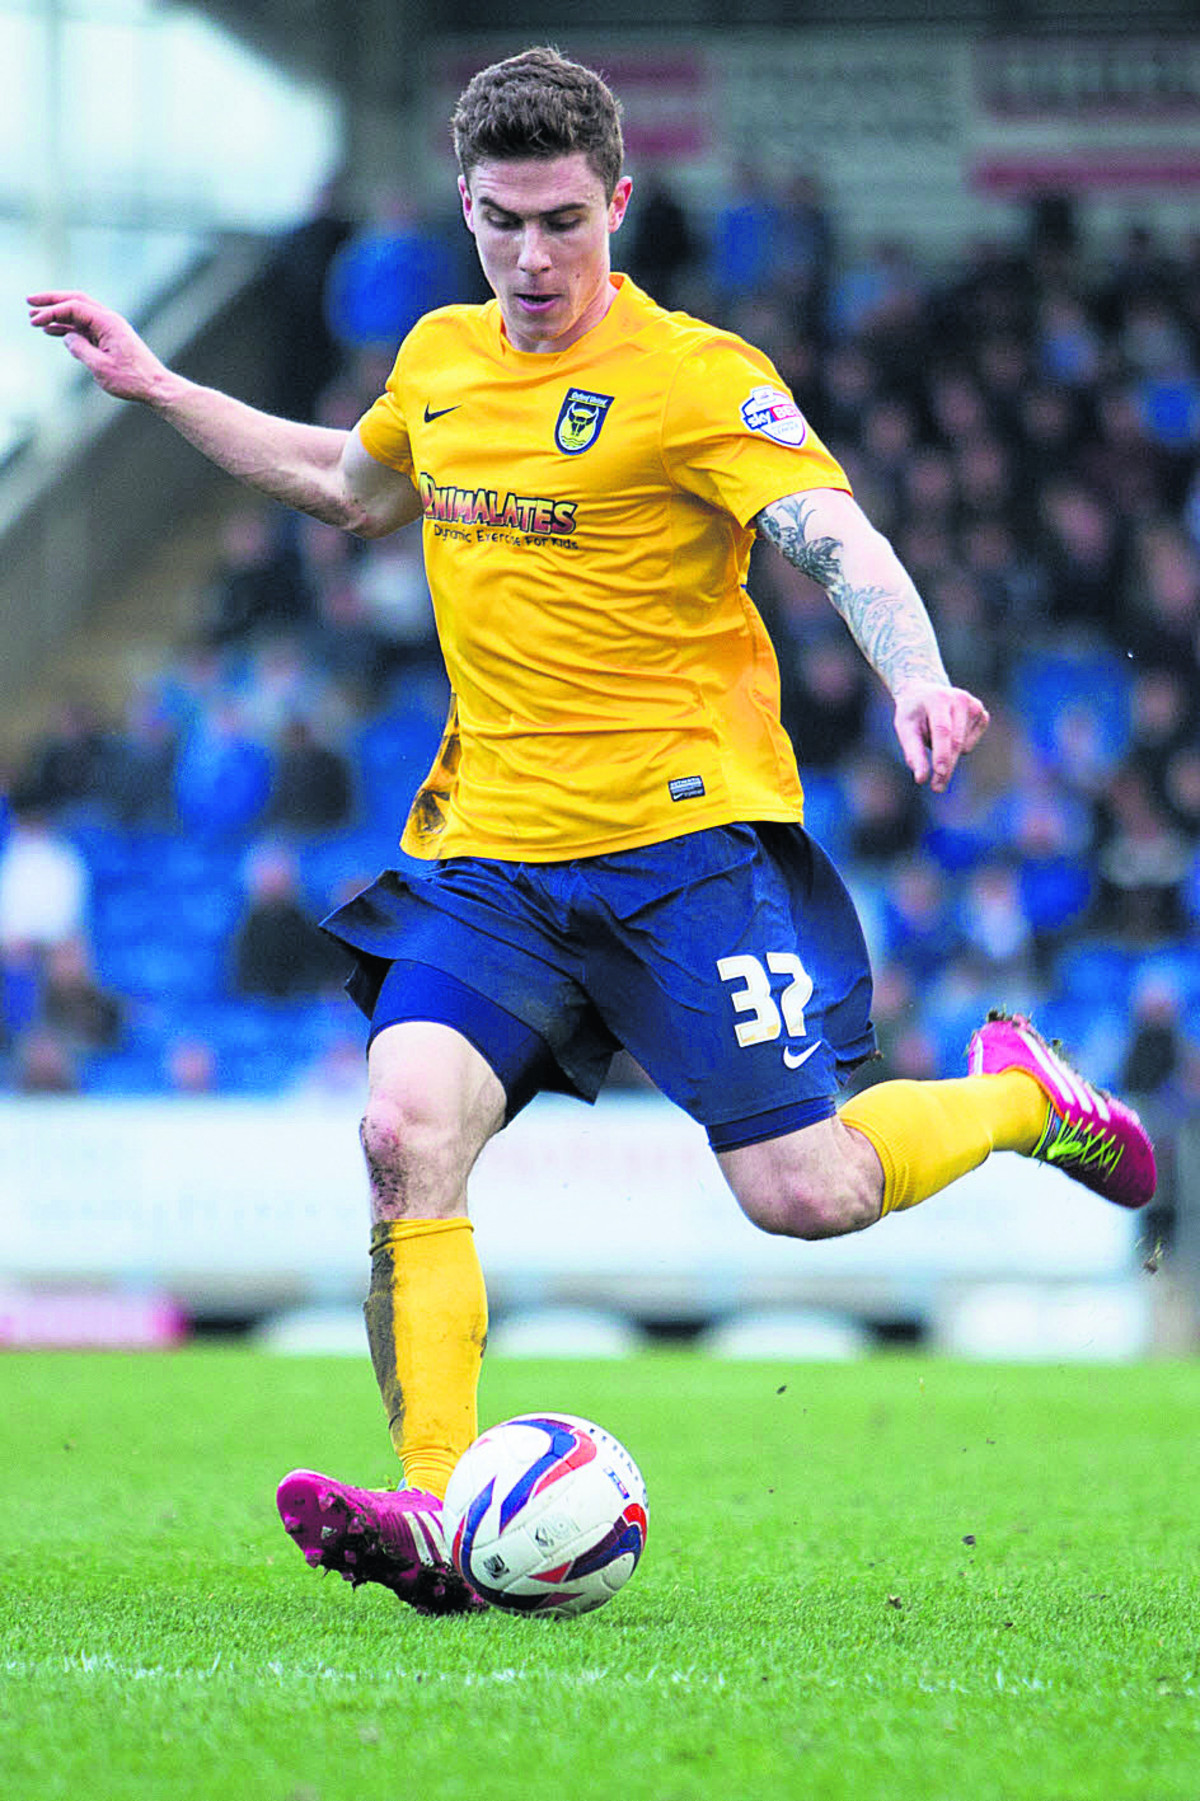 Josh Ruffels says Oxford United want to finish on a good note for the fans in the final home game of the regular season against Accrington